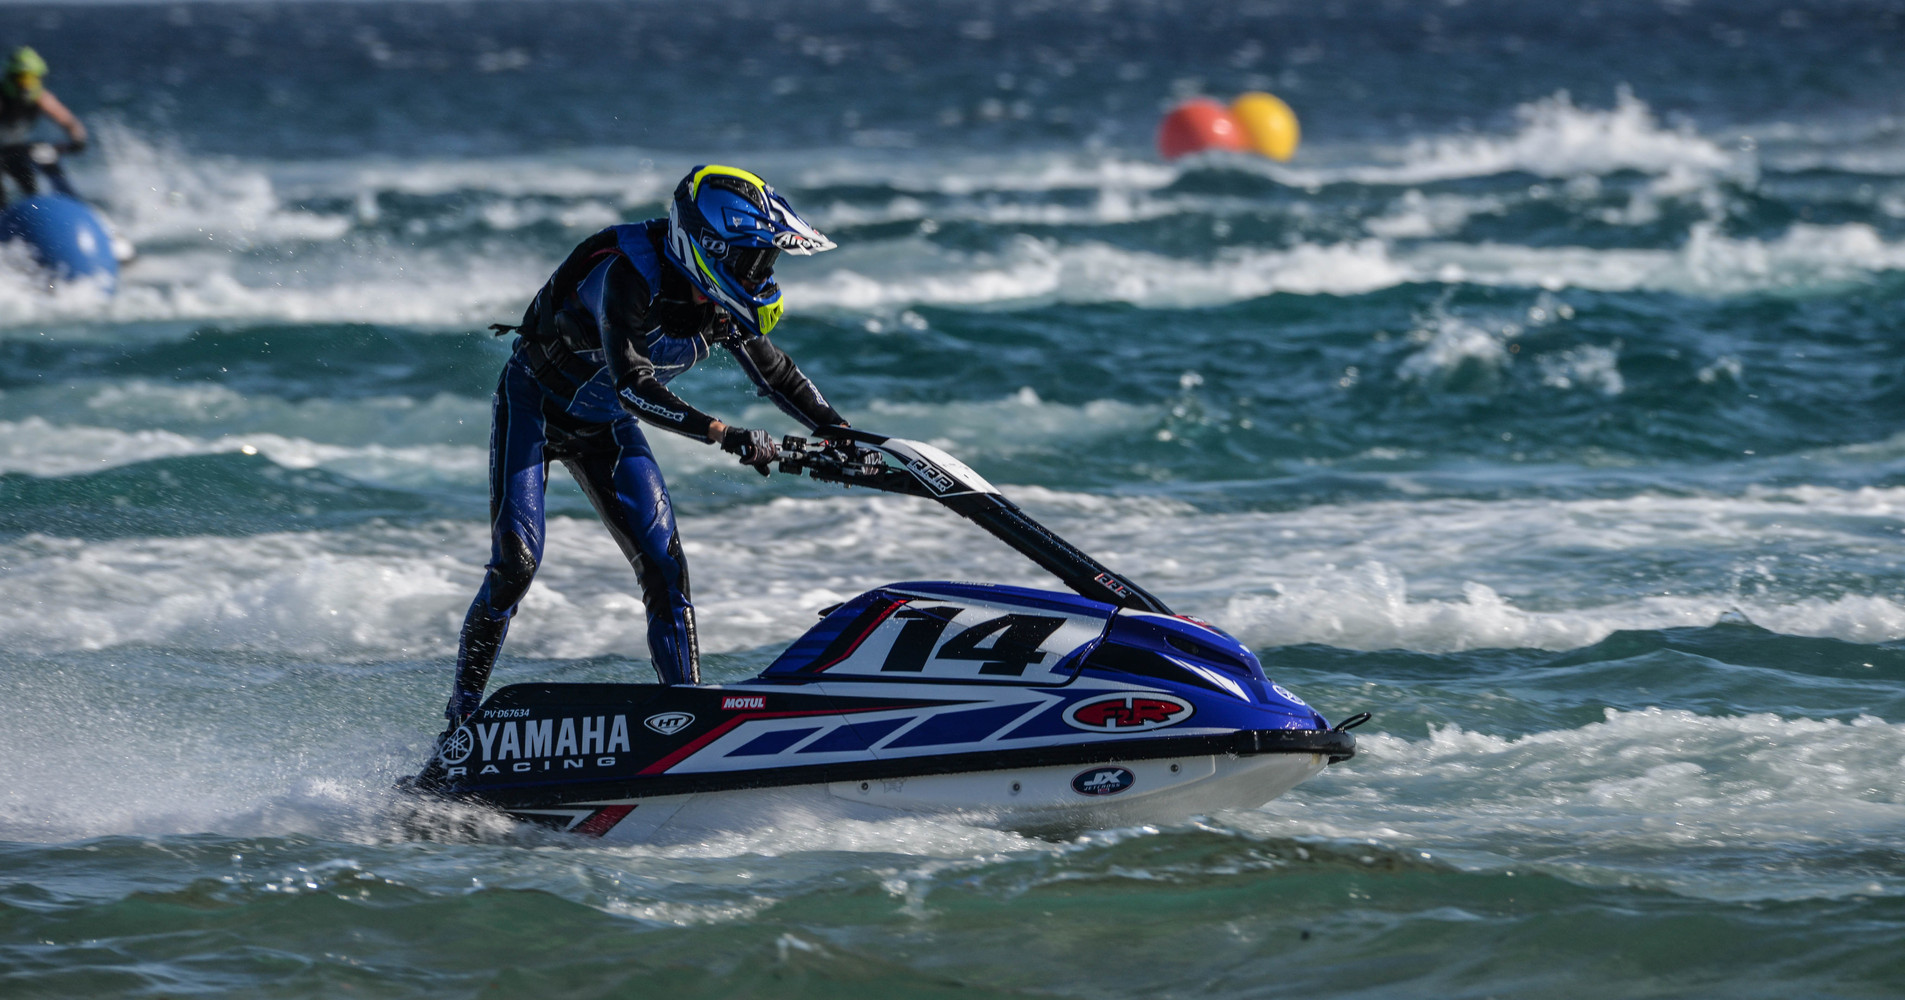 Impressive performance from newcomer Paul Thomas in the Am Ski JX3 class